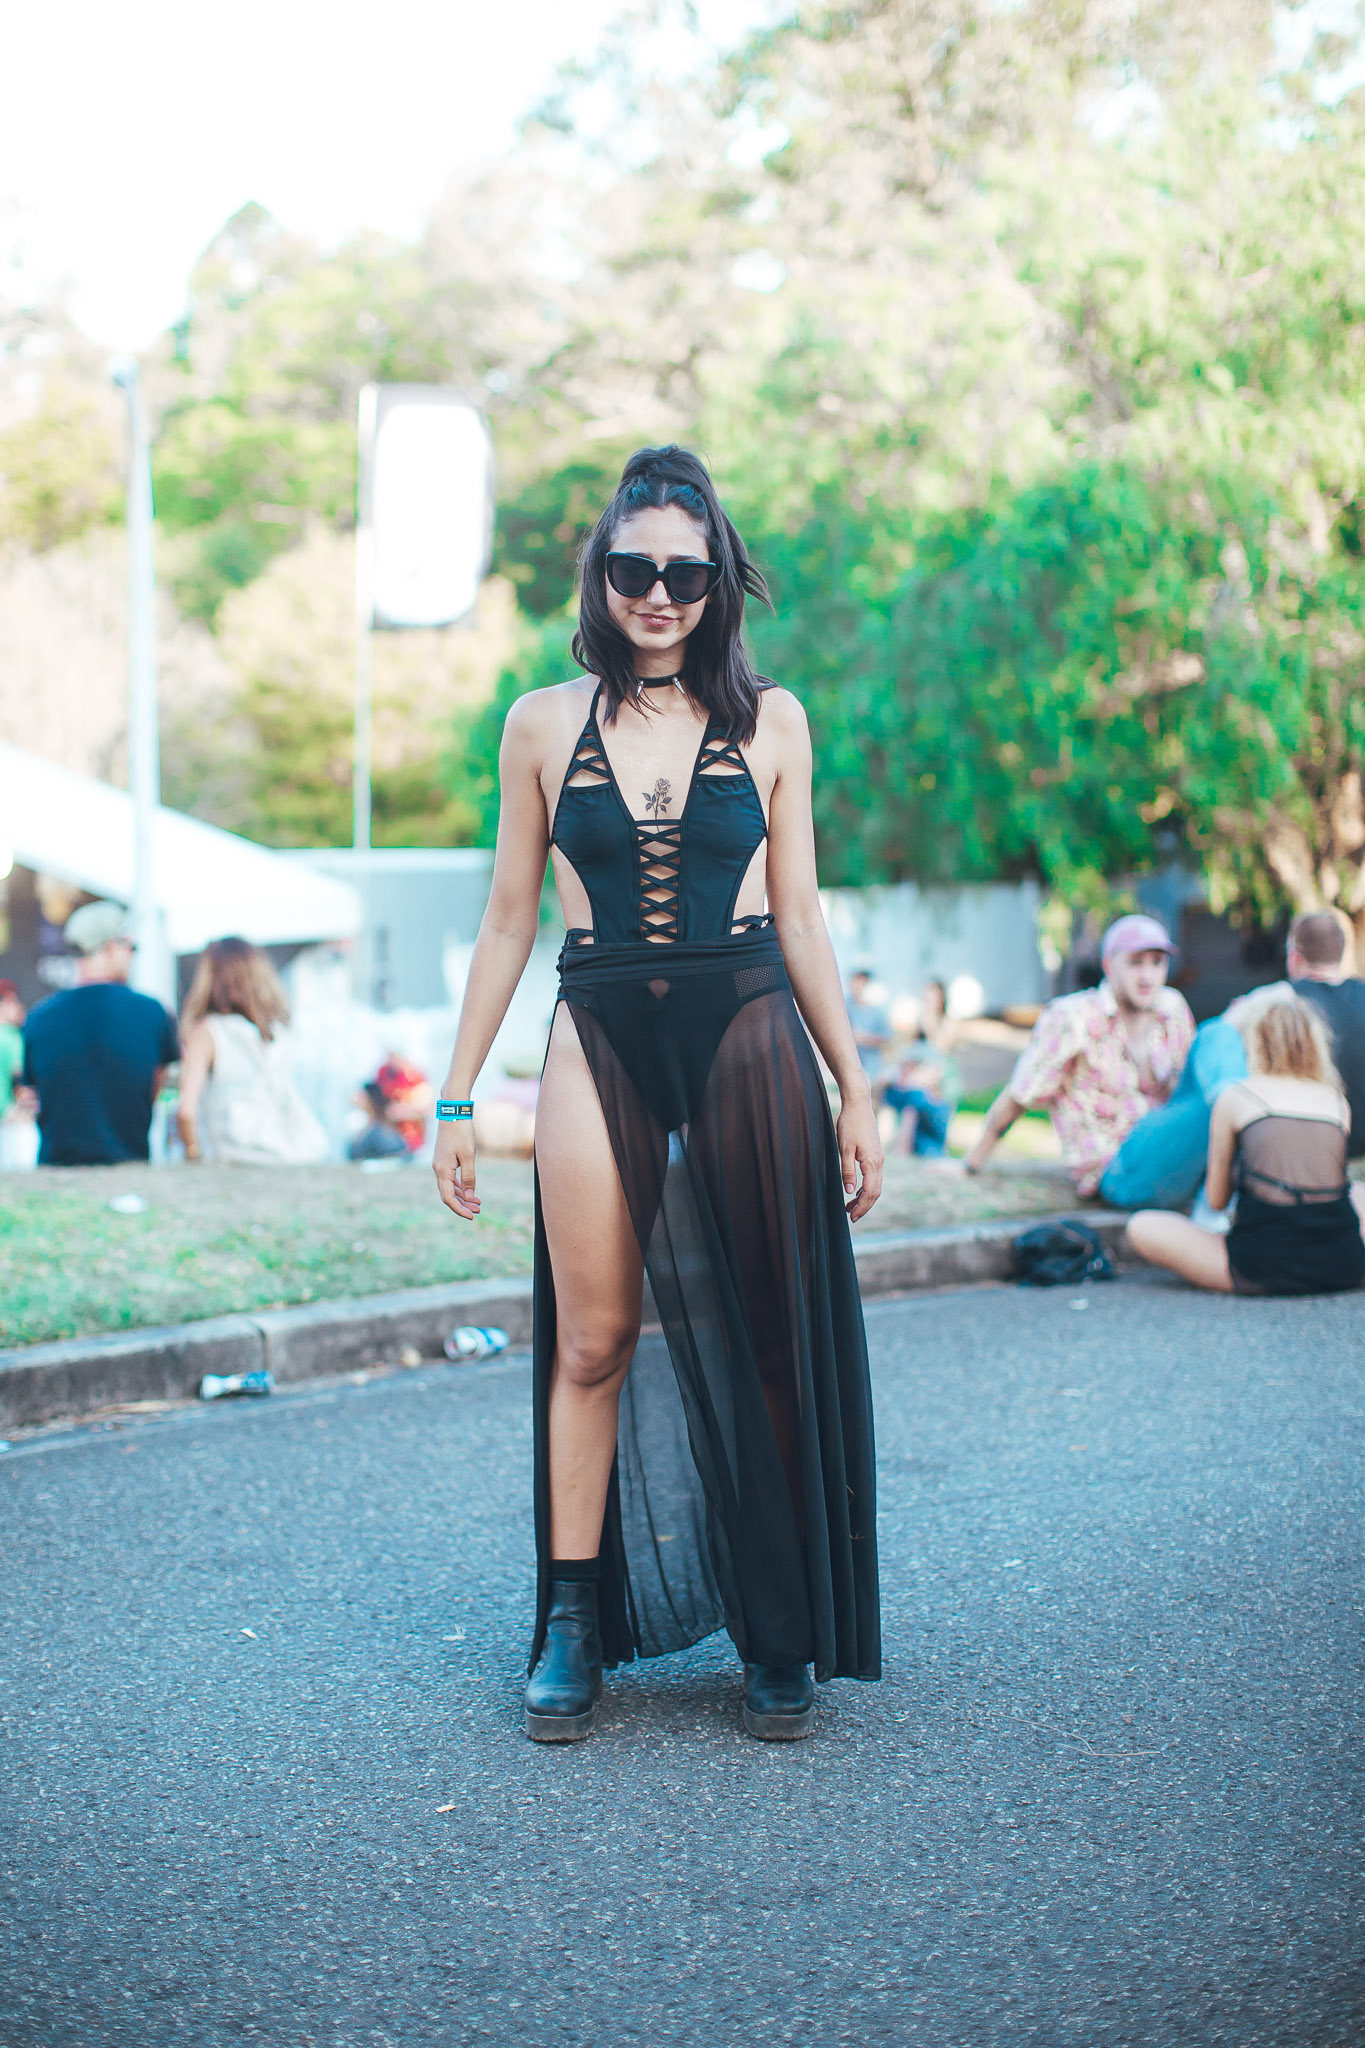 laneway_photo-by-oliver-minnett-00712